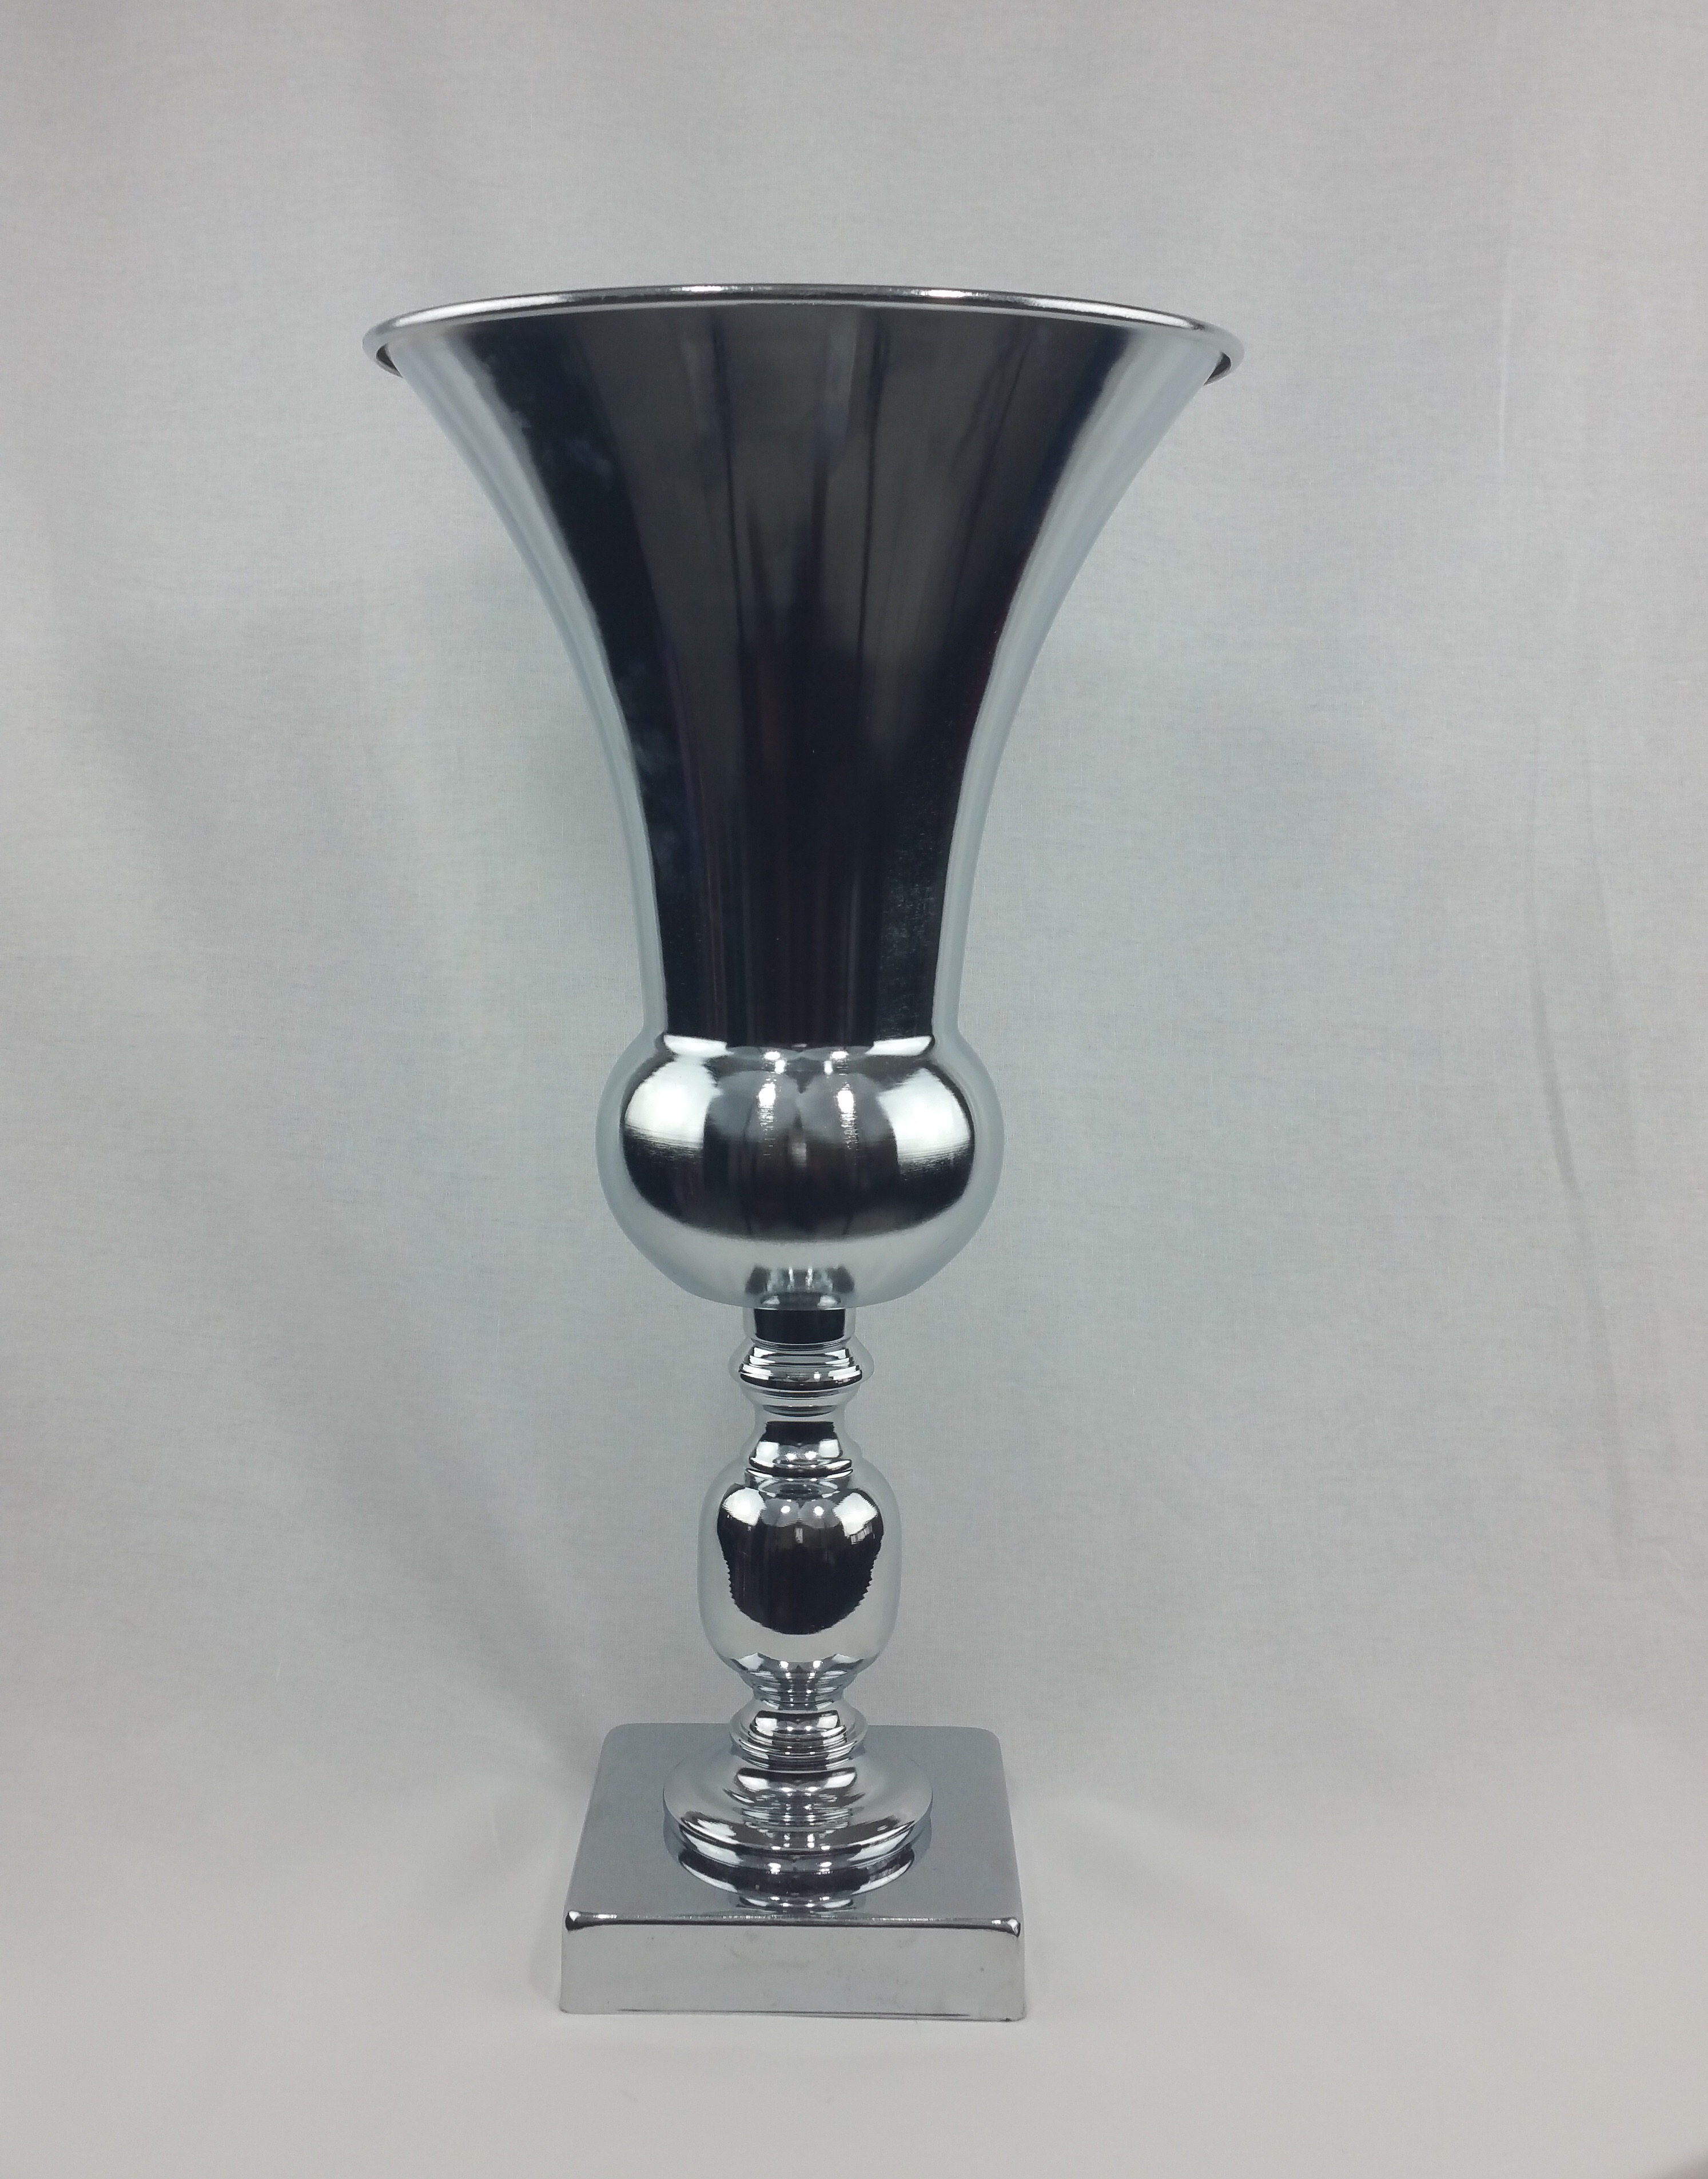 Silver urn. 50cm tall. From £12 each.